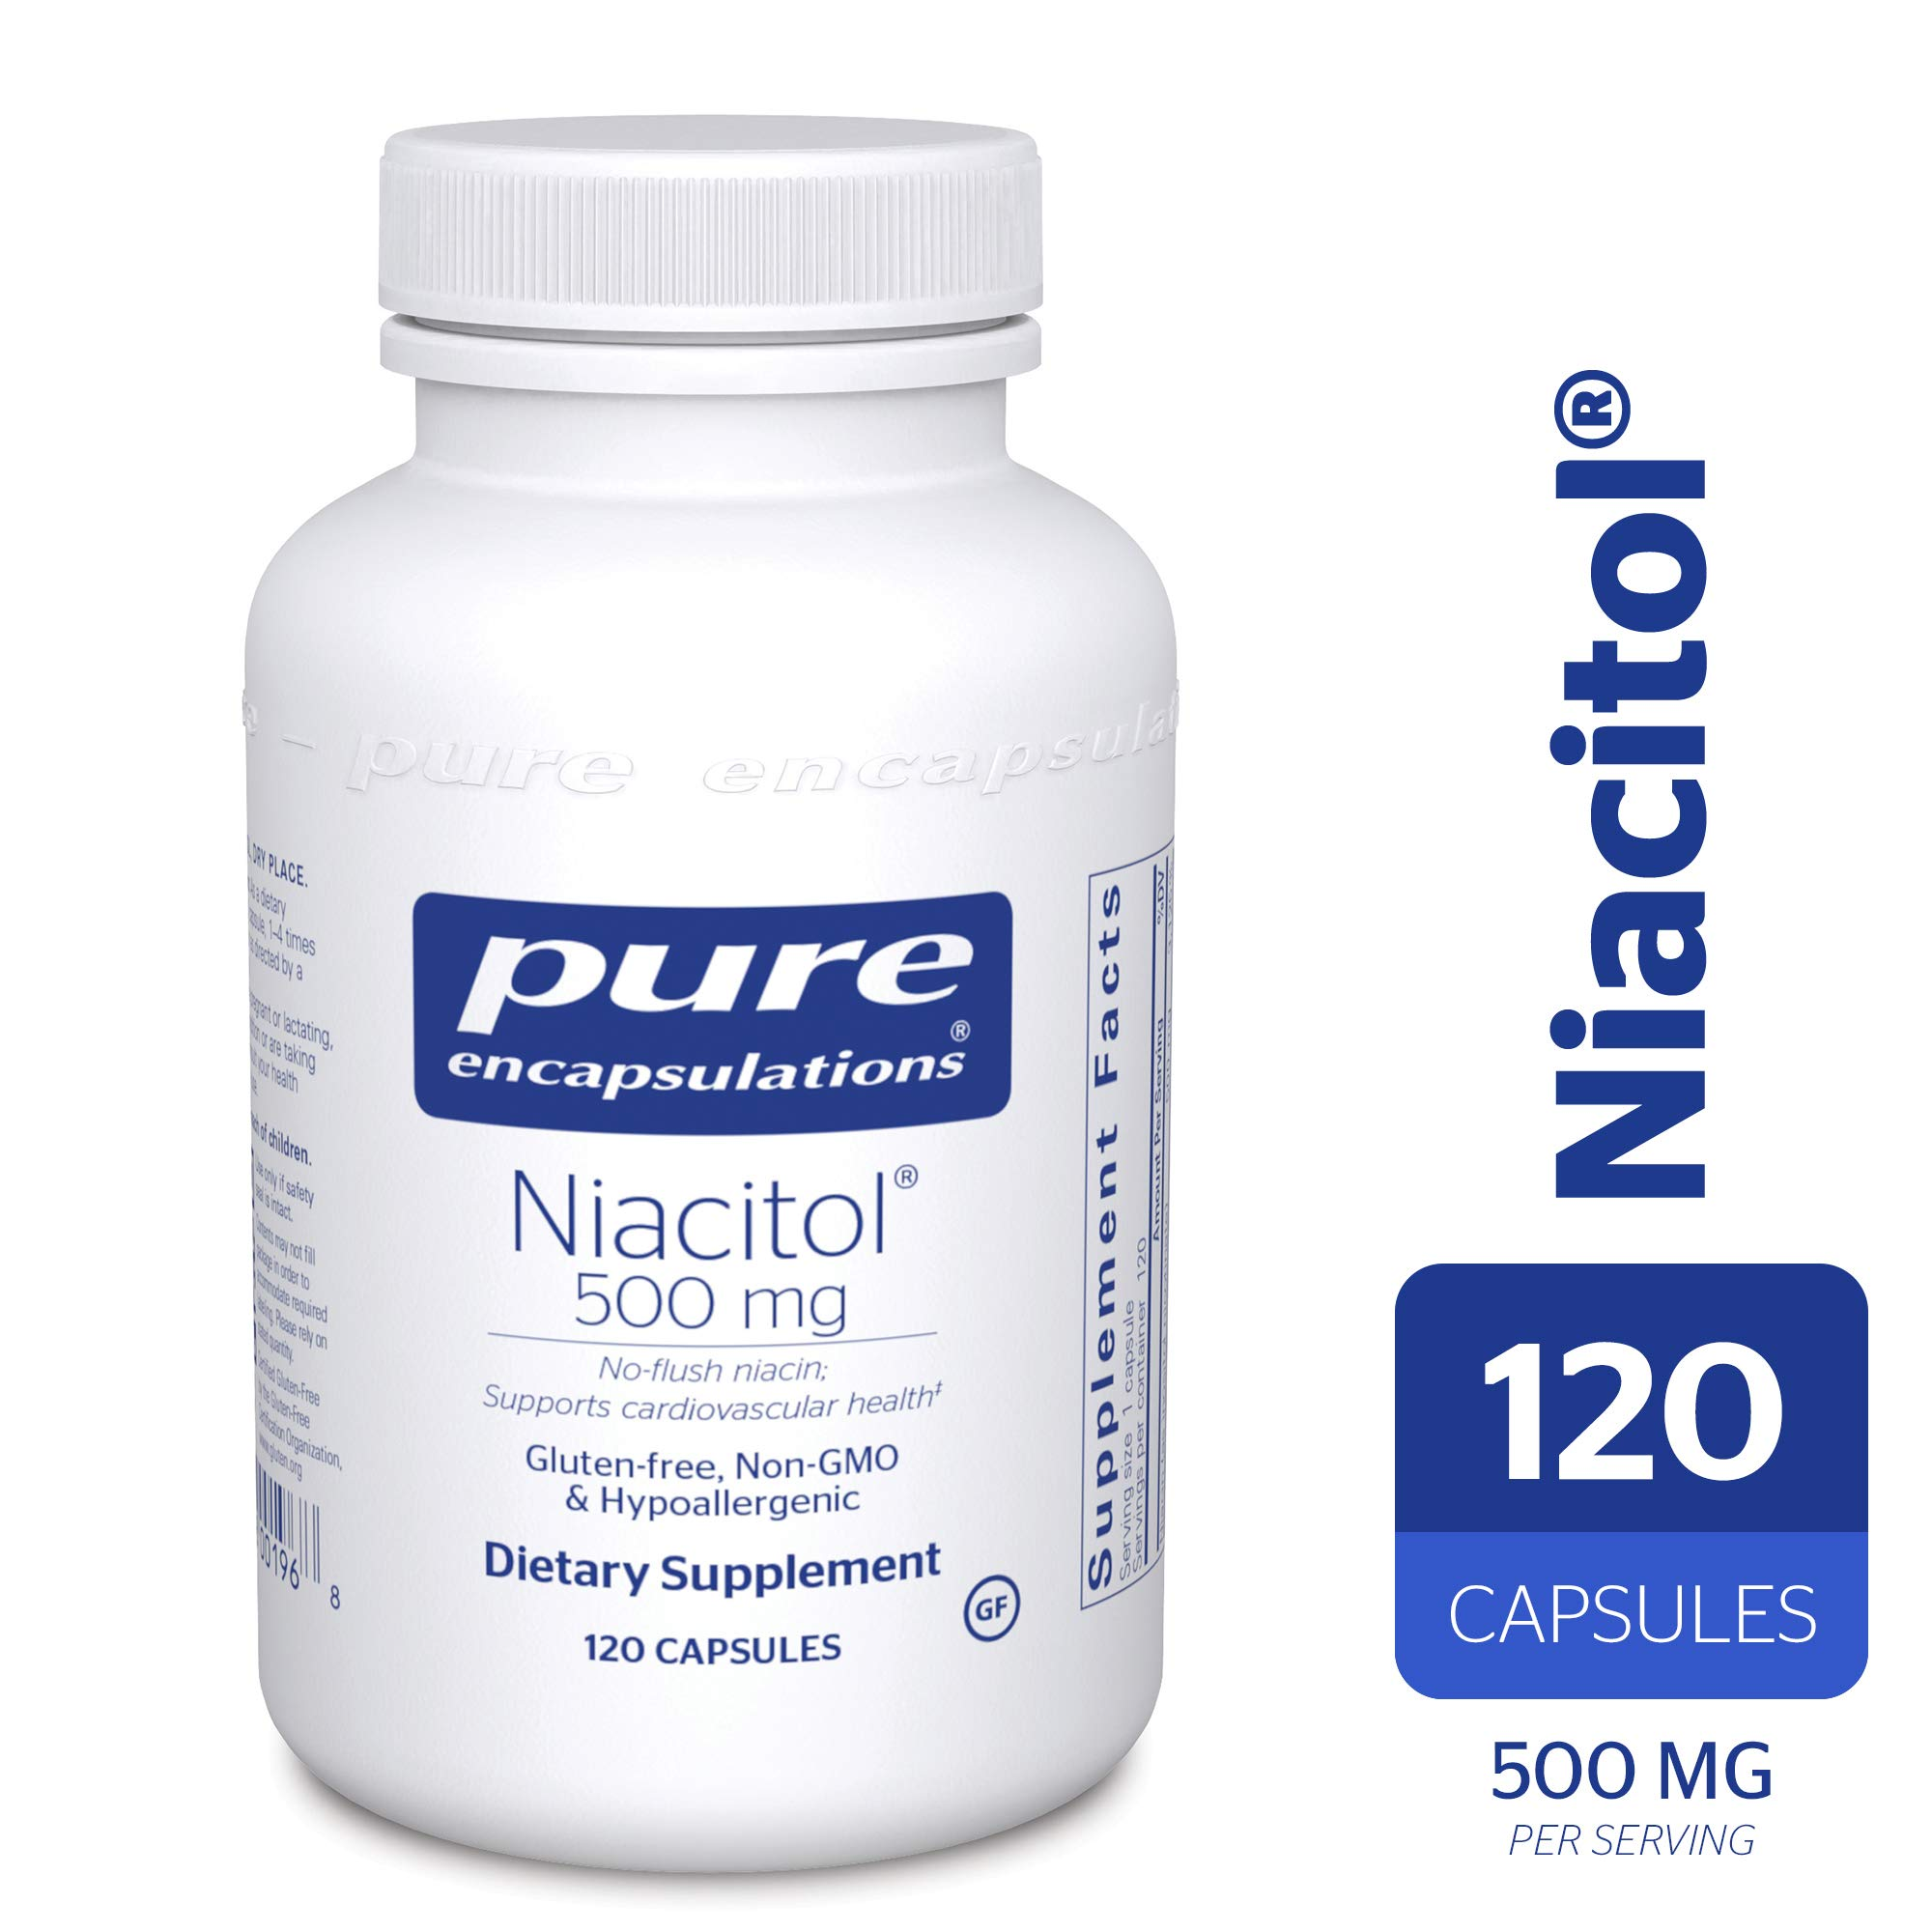 Pure Encapsulations - Niacitol 500 mg - Hypoallergenic No-Flush Niacin to Support Digestion, Hormone Synthesis, and Tissue Formation* - 120 Capsules